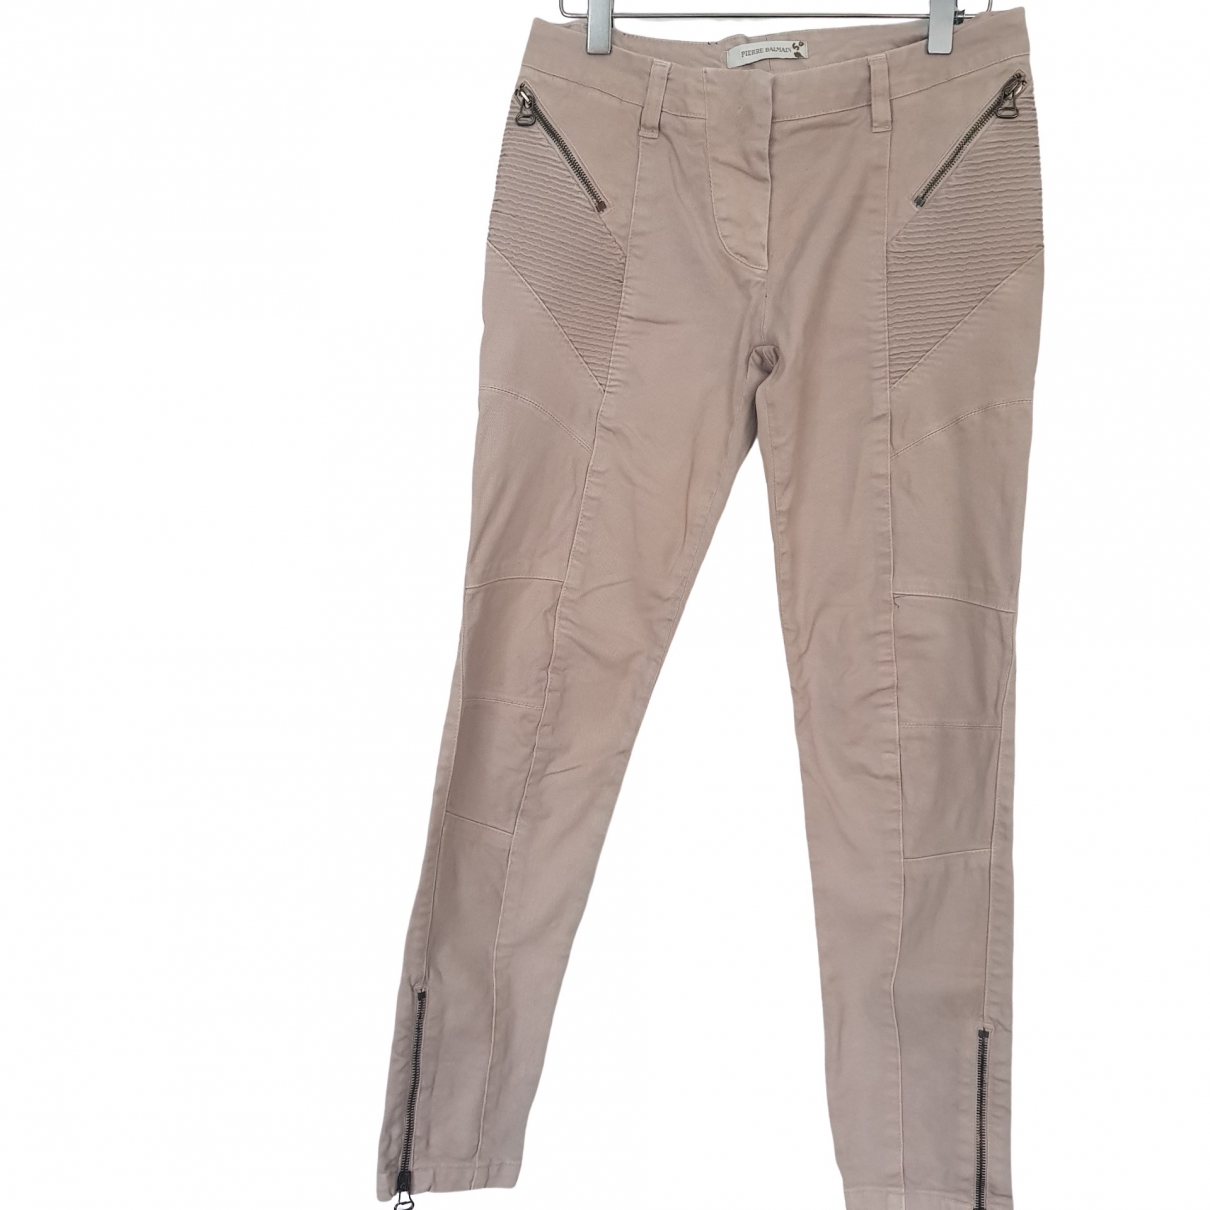 Pierre Balmain \N Beige Cotton Trousers for Women 40 FR